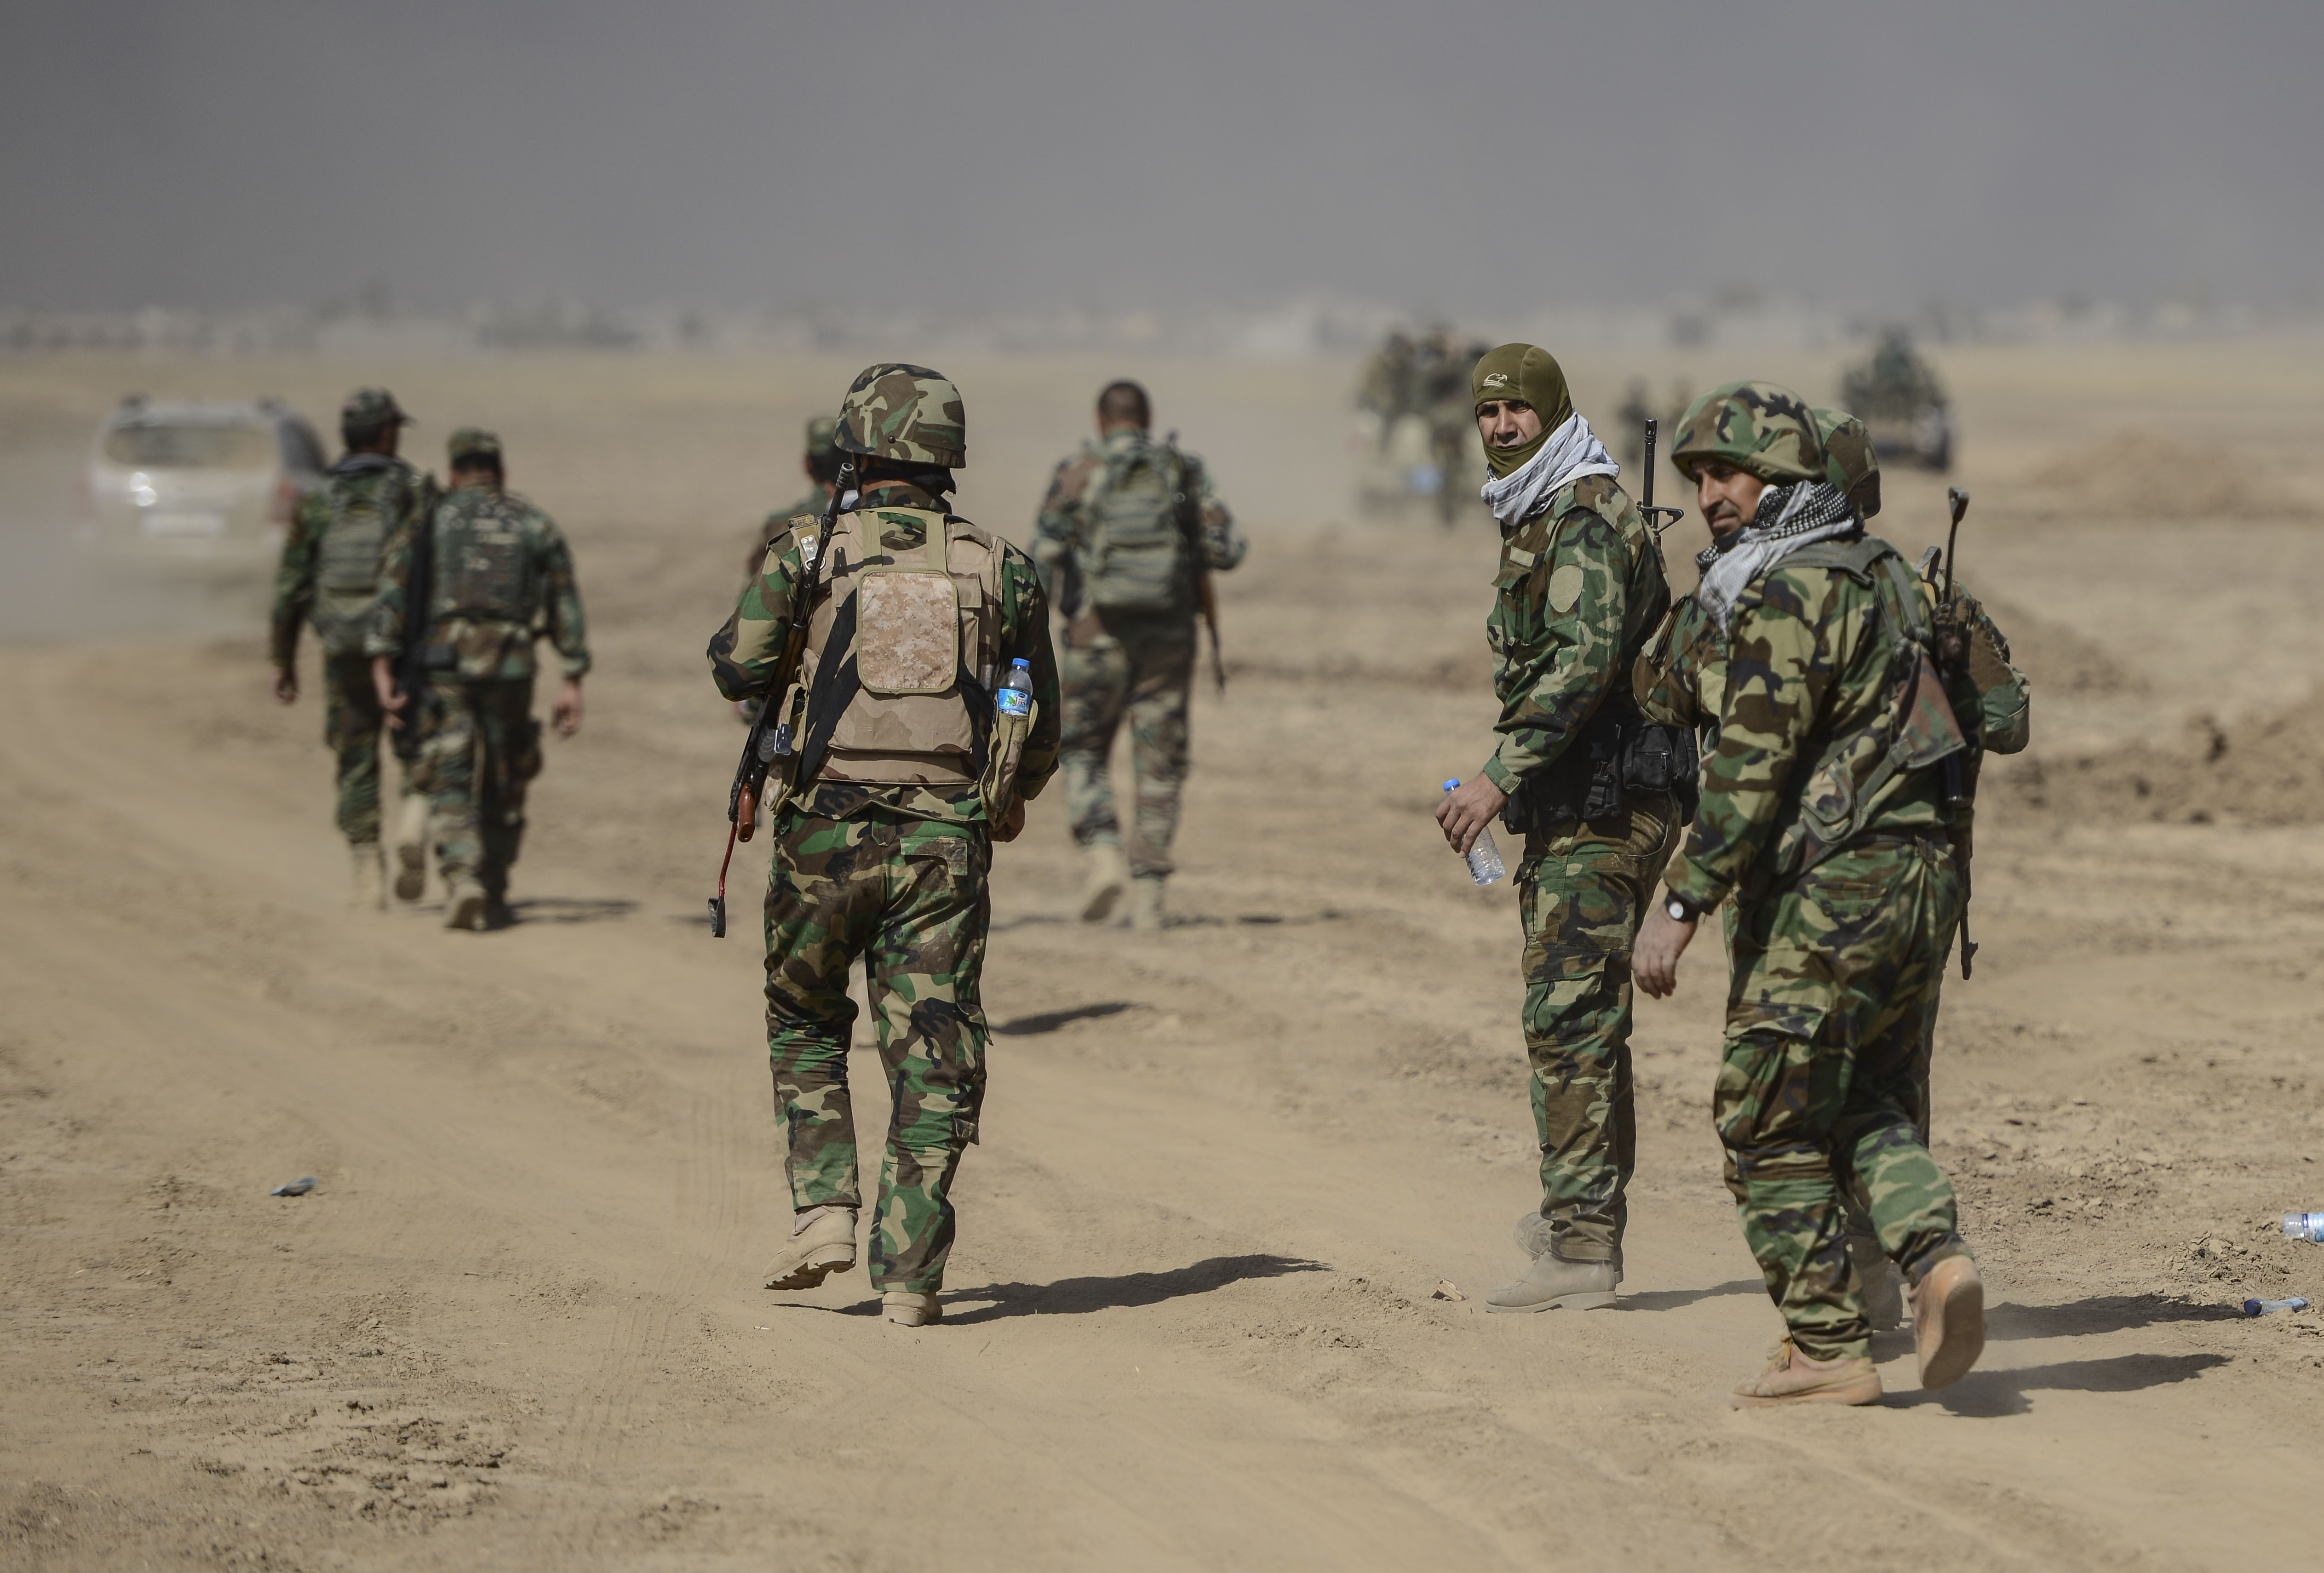 Peshmerga forces are seen at the Tarjala village as they attack on Deash targets during an operation to liberate Mosul from Daesh terrorist organization on October 17, 2016.